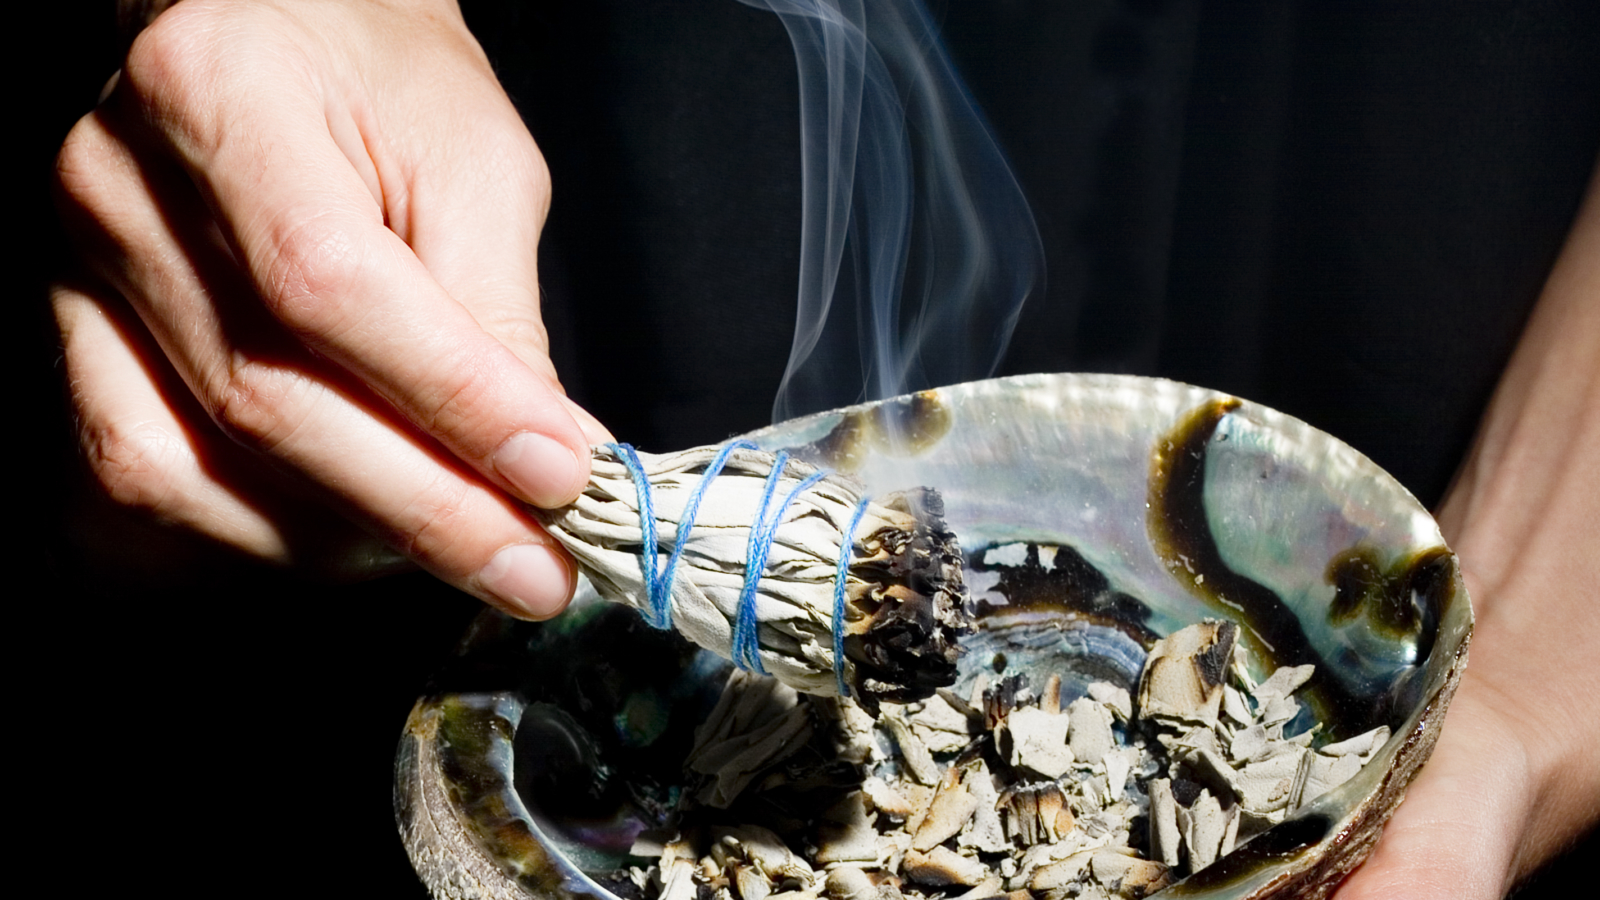 burning herbs used for smudging